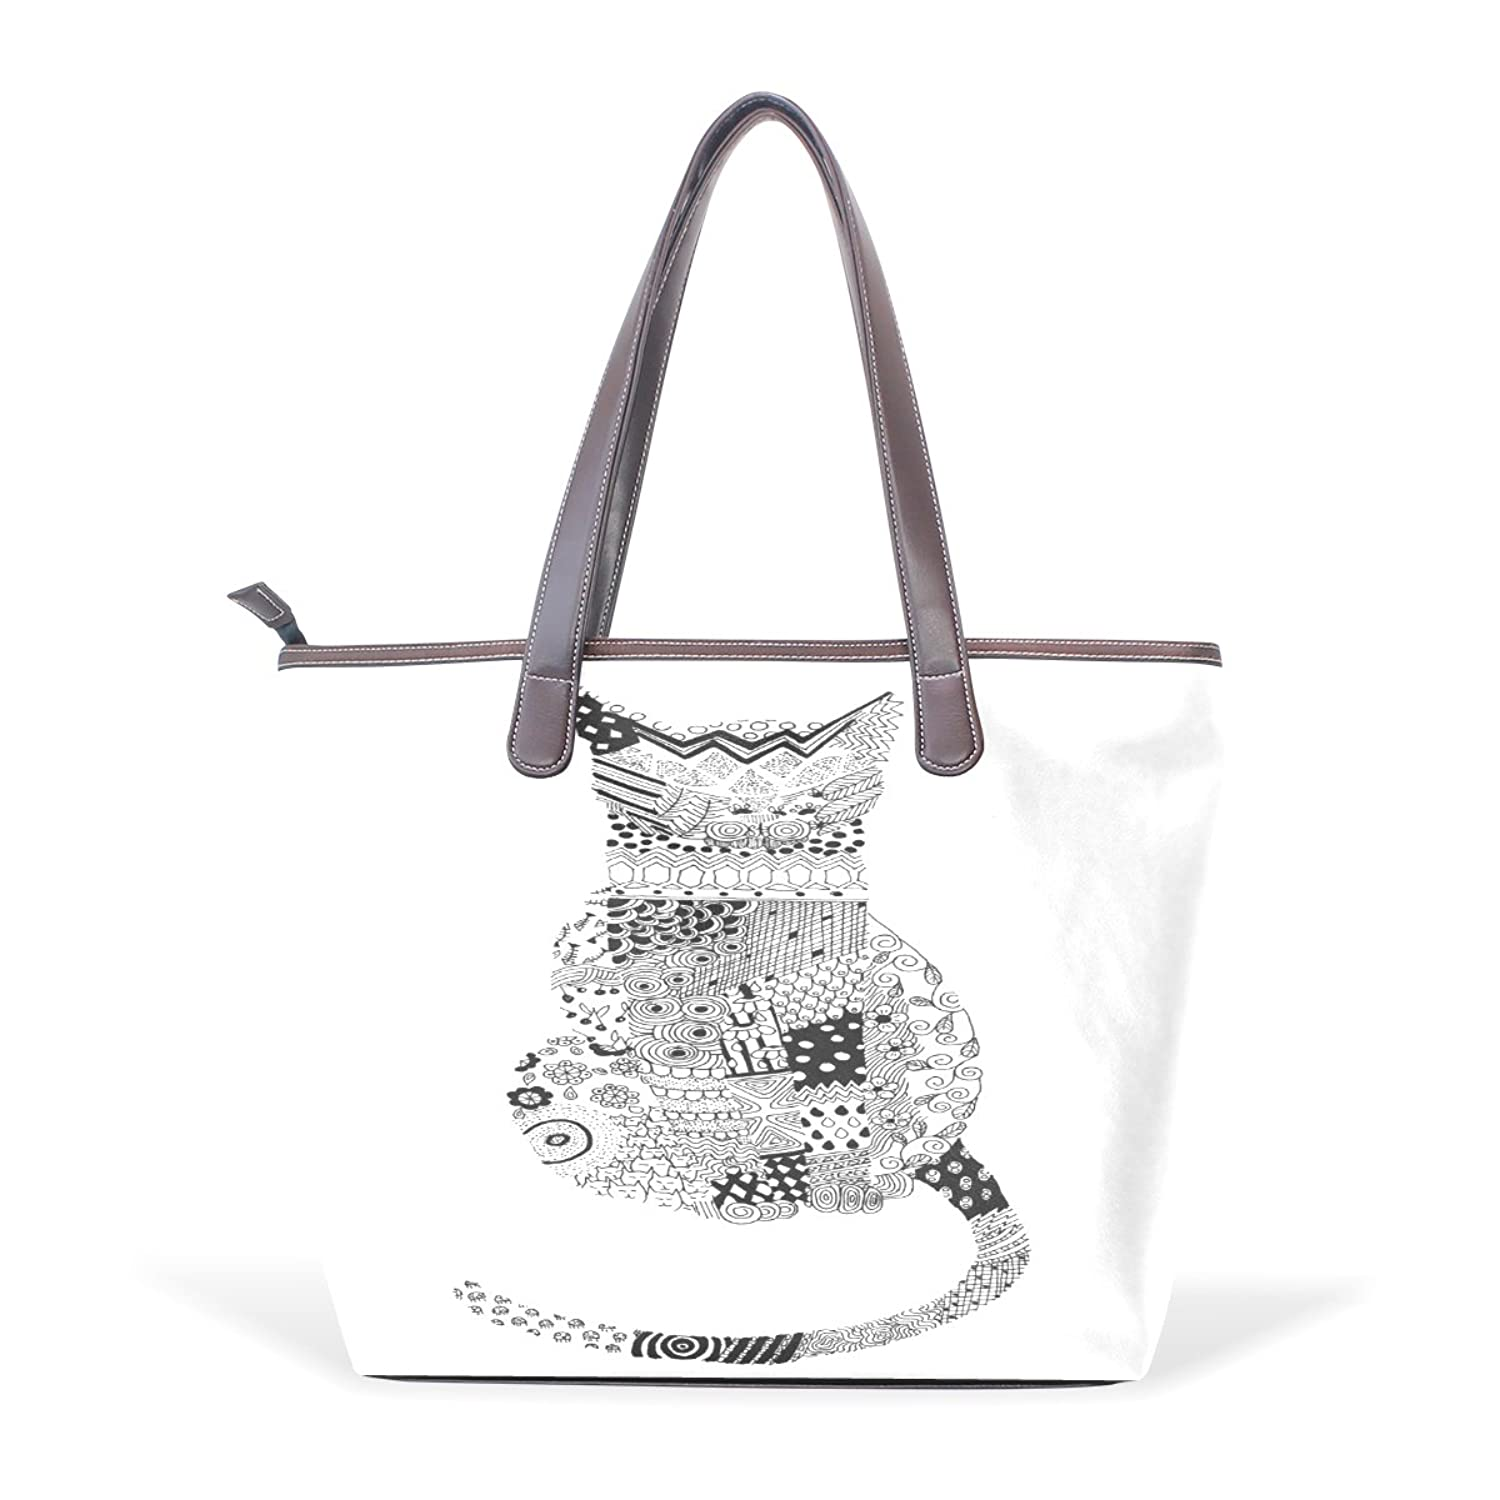 CCBHGY Women's Black And White Stitching Cat Back pattern Leather Handbag Zipper Shoulder Bag Tote Bag